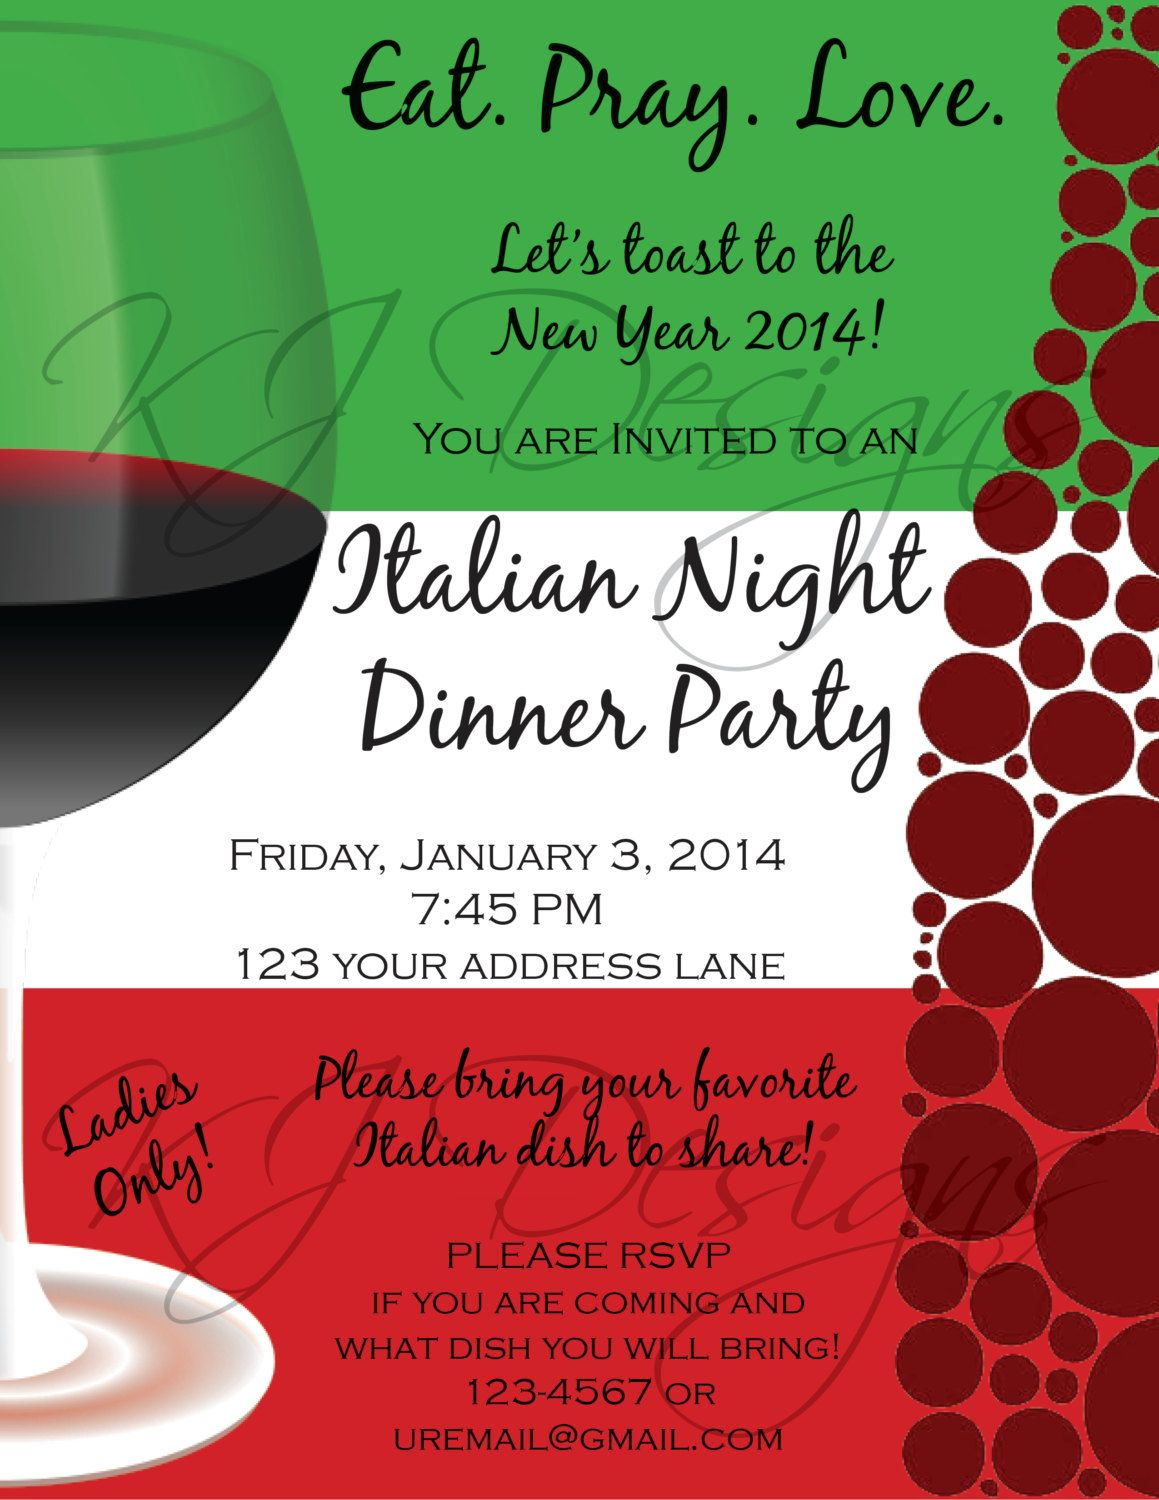 Italian Dinner Party Invitation Template Don Huppe Pinterest - Party invitation template: club party invitation template